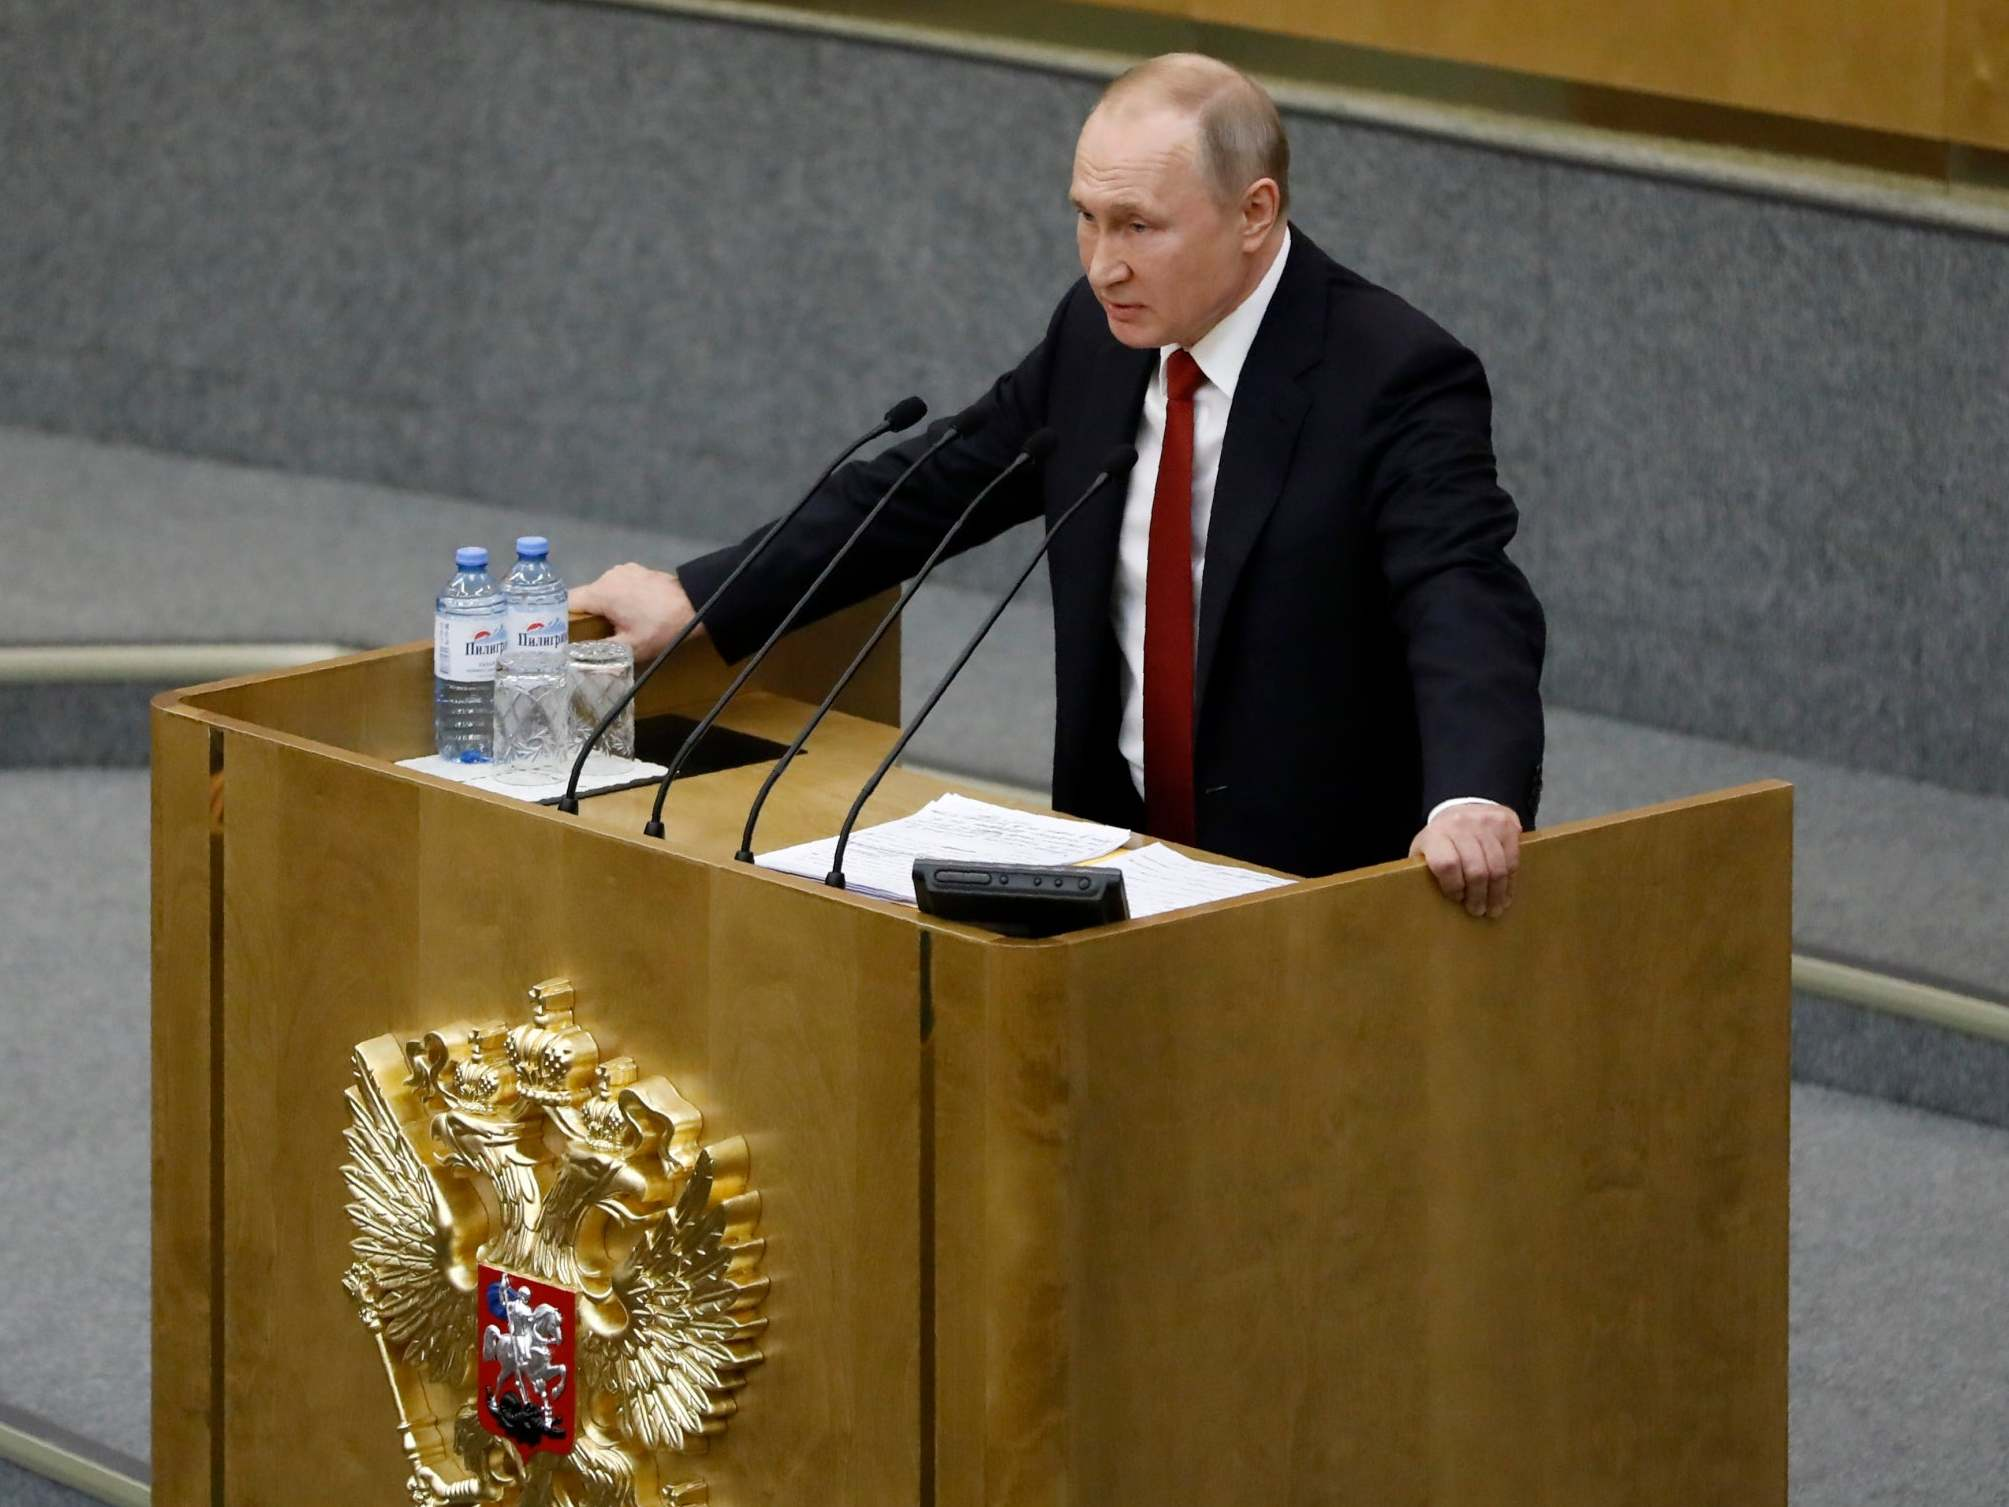 Putin Agrees To Reset Term Limits And Extend His Presidency To 2036 The Independent The Independent